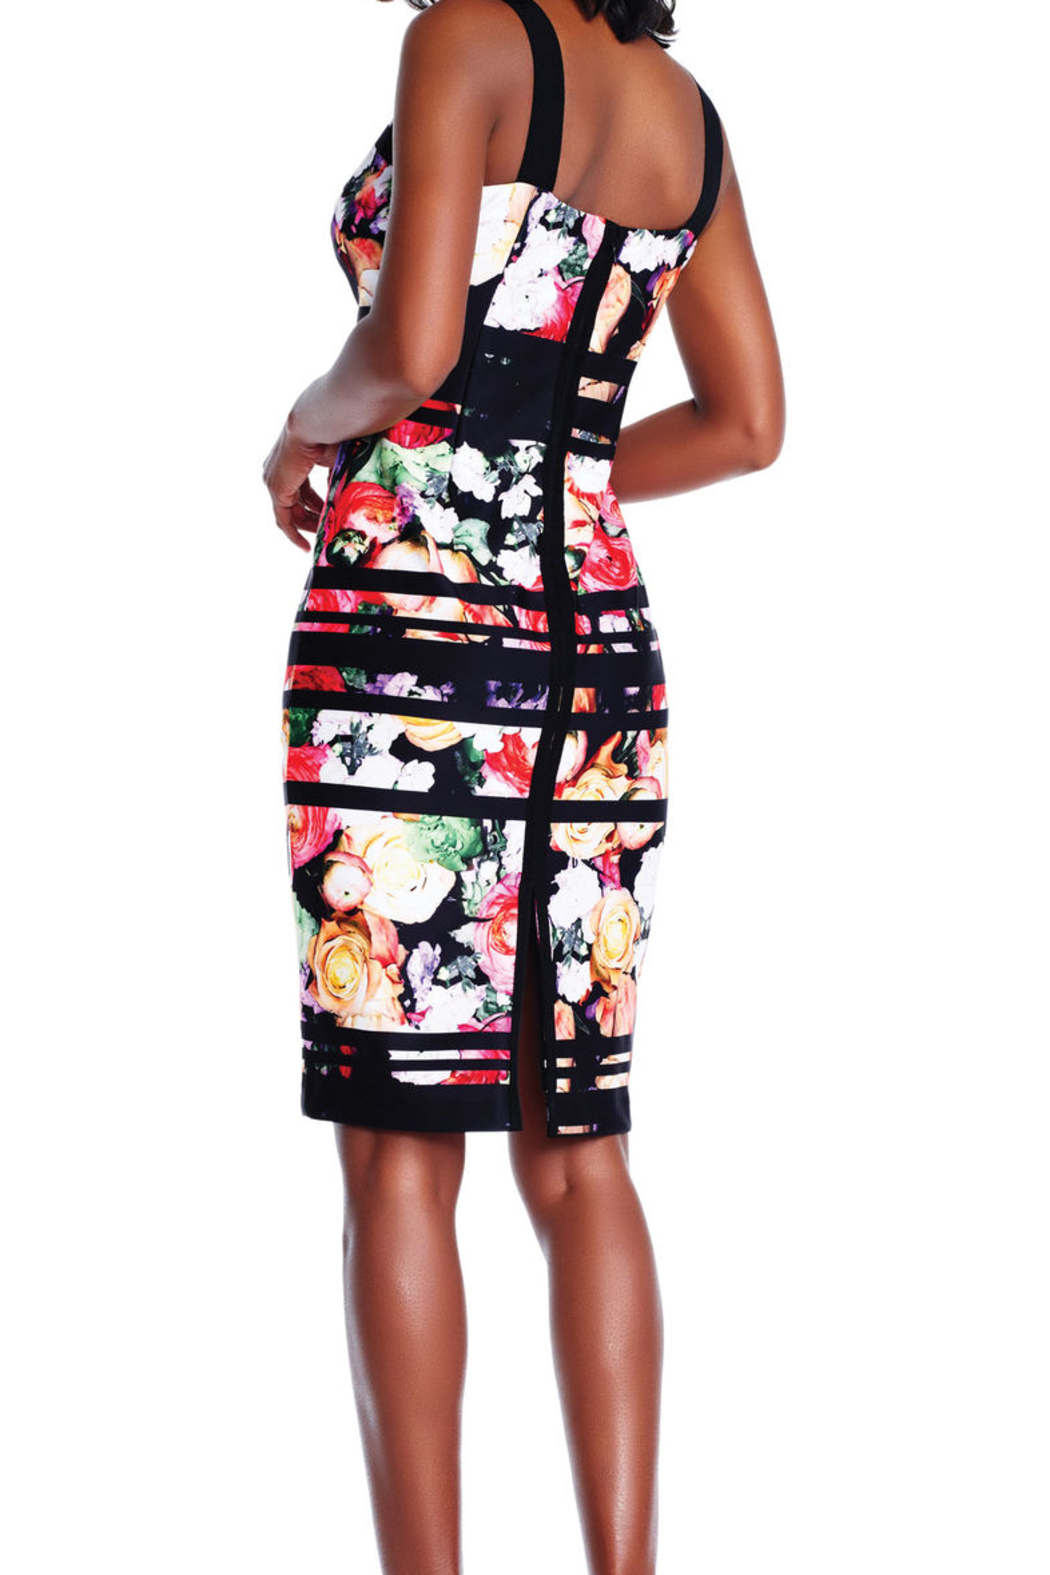 Adrianna Papell Striped Floral Dress from Ohio by e.j. hannah ...